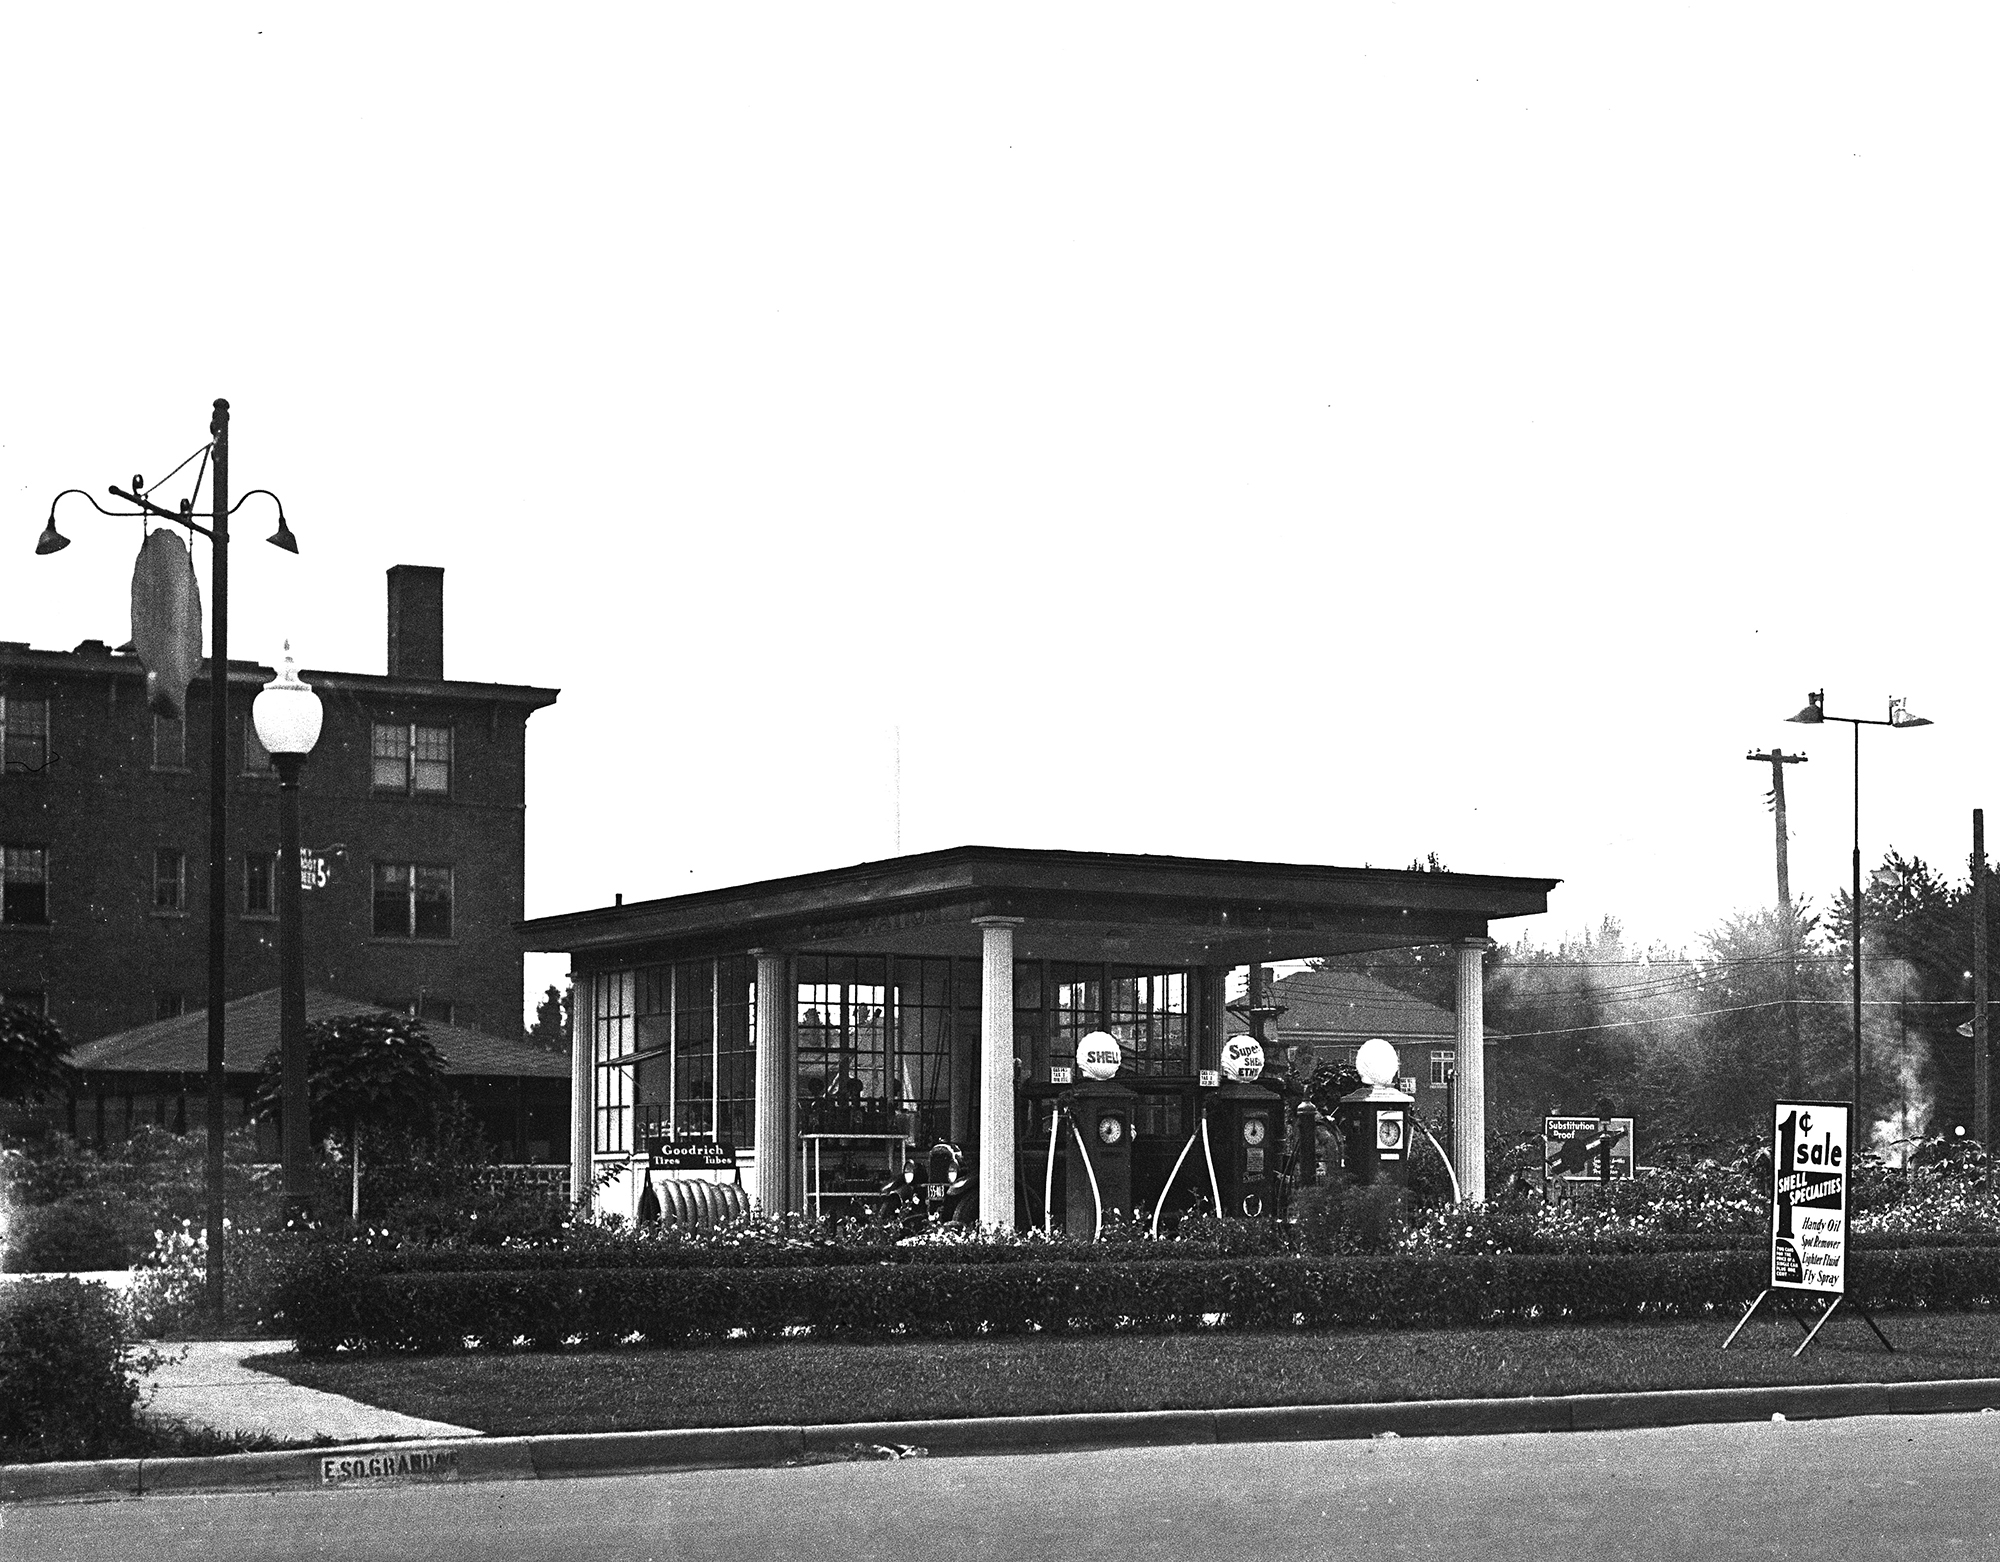 Shell station at 430 South Grand Ave. E., 1932. The clamshell atop the pumps is the company's signature piece of brand identity.